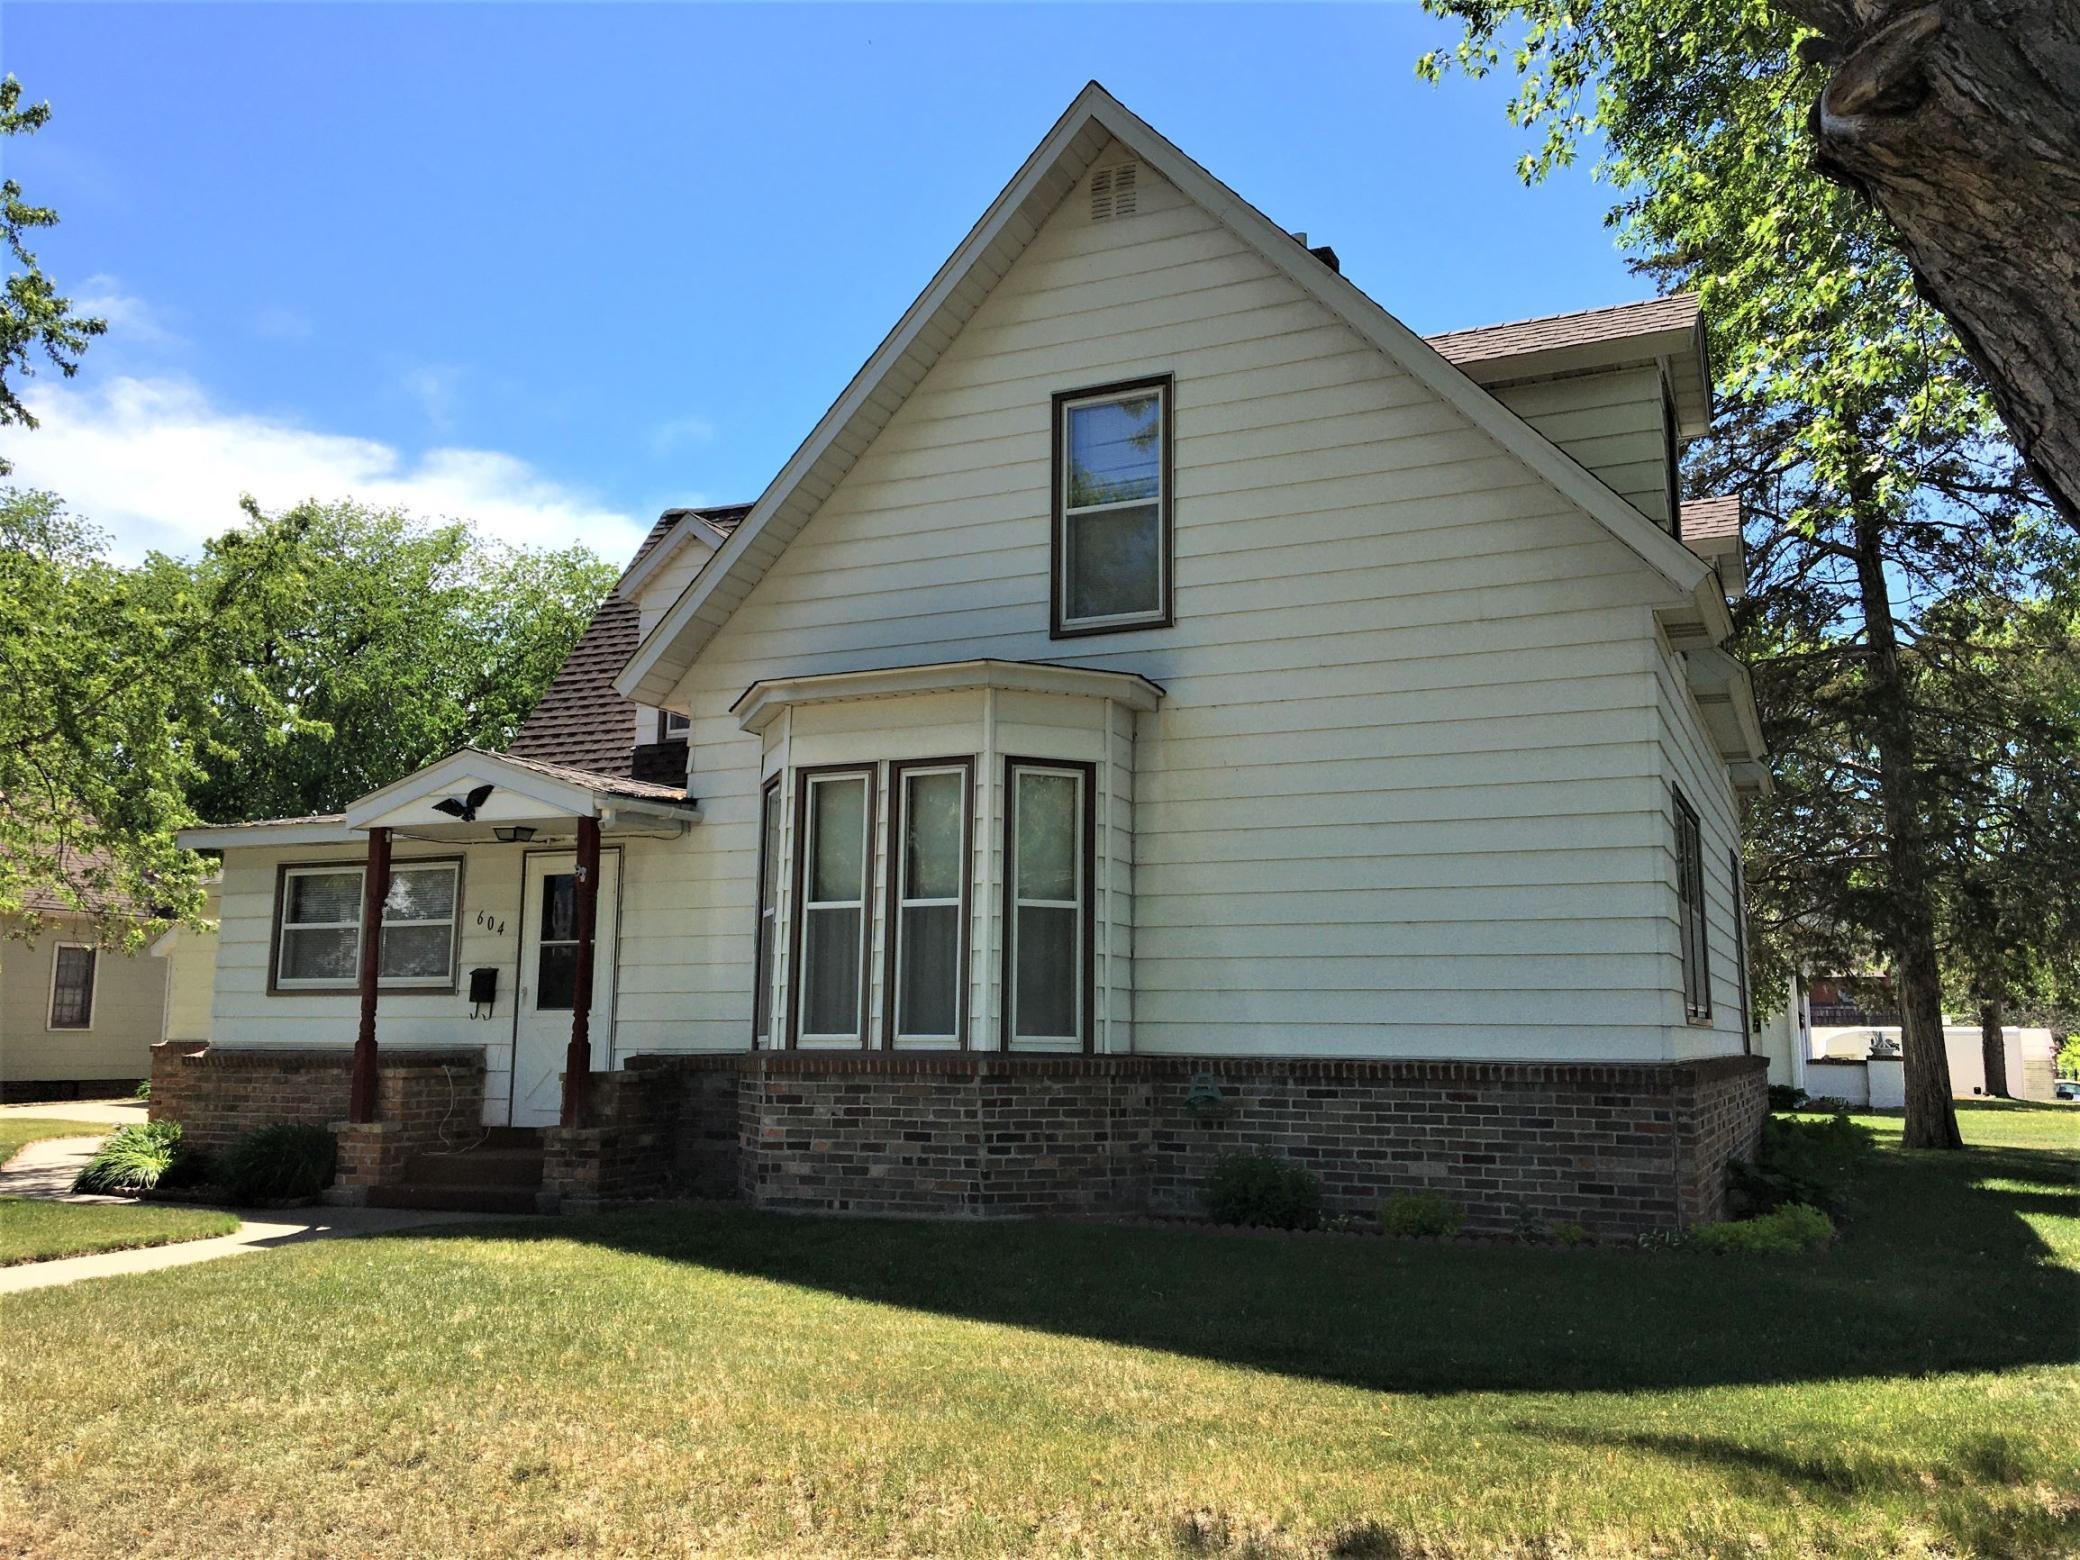 JUST LISTED! Check out this 3 bed, 2 bath 1 ½ story home on a corner lot. Home features hardwood floors, main floor laundry, main floor family room & den. You'll love the grand staircase, garden and many storage spaces this home has to offer!(Buyer's agent to verify all measurements/info.)